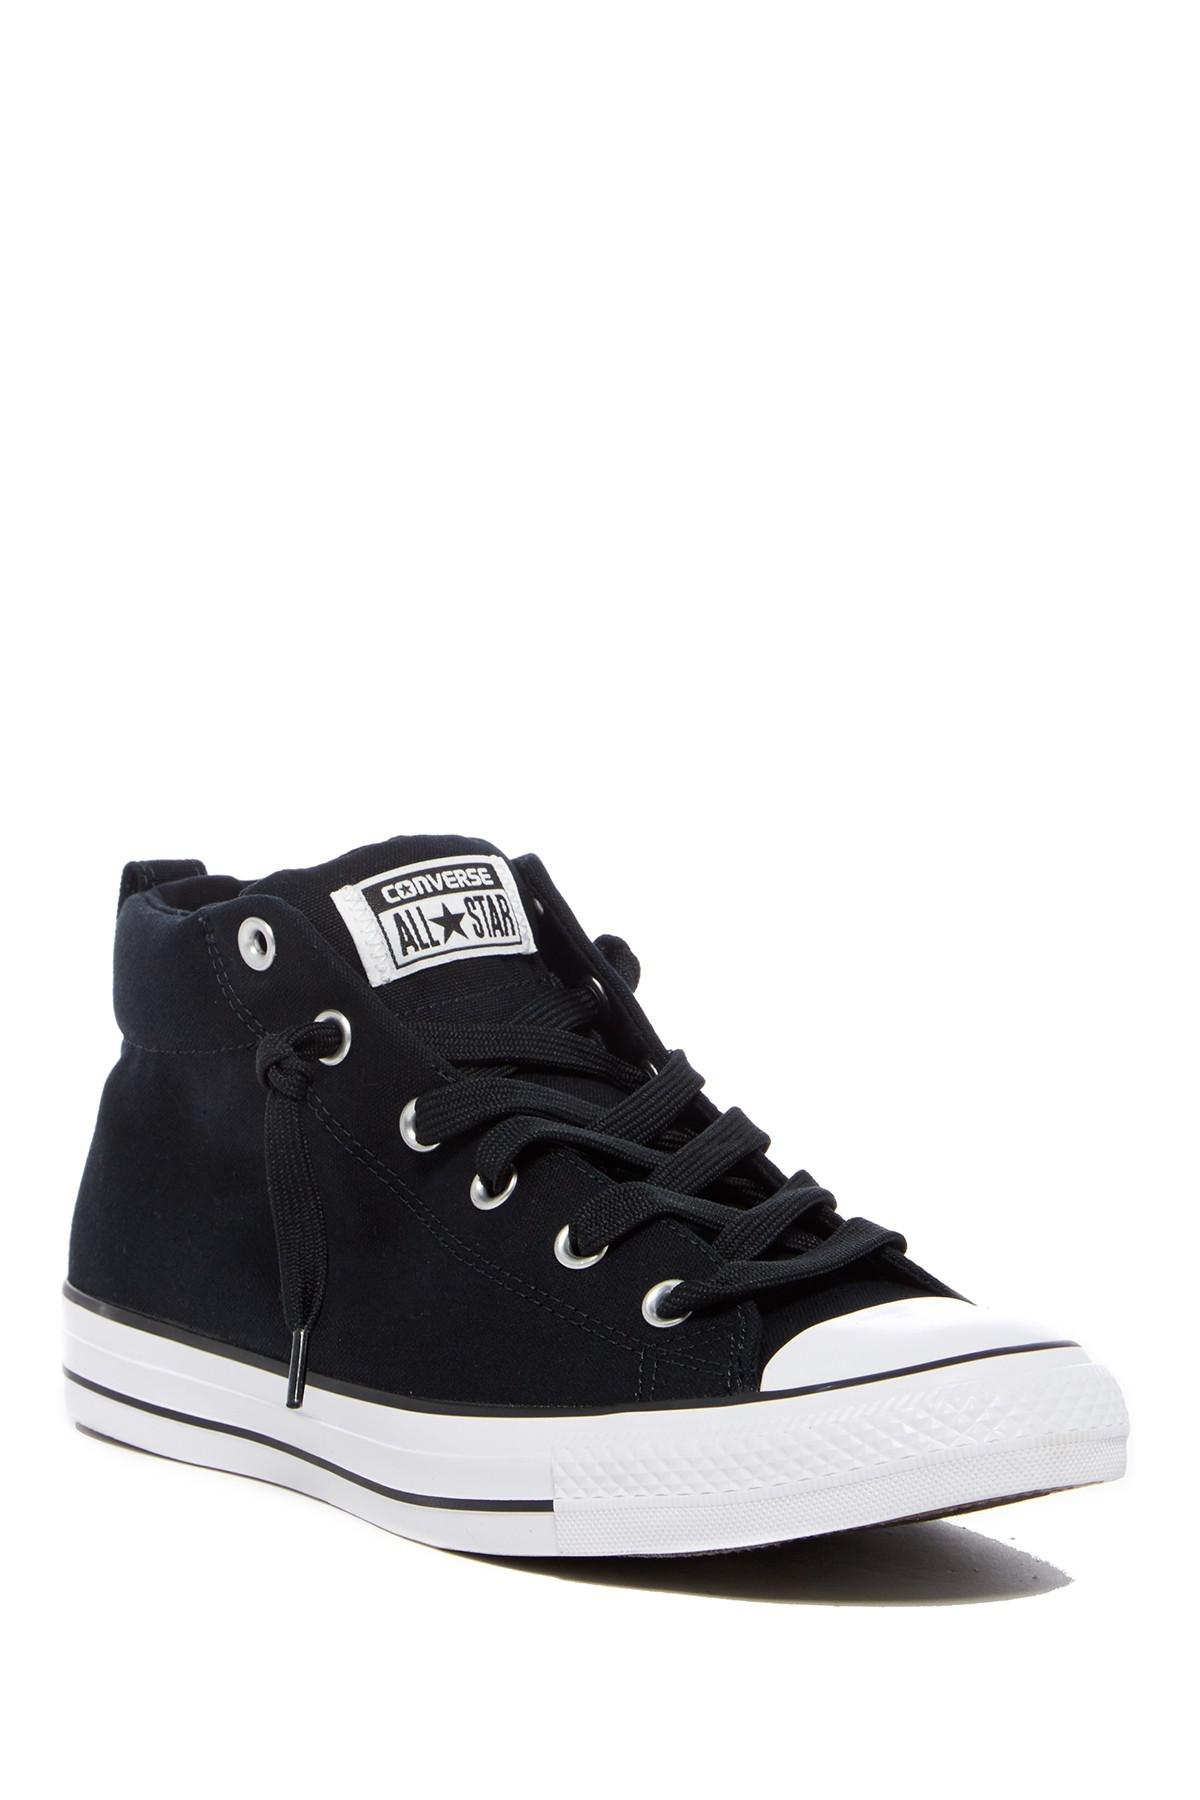 afe37fc26aba Lyst - Converse Chuck Taylor All Star Street Sneaker (unisex) in Black